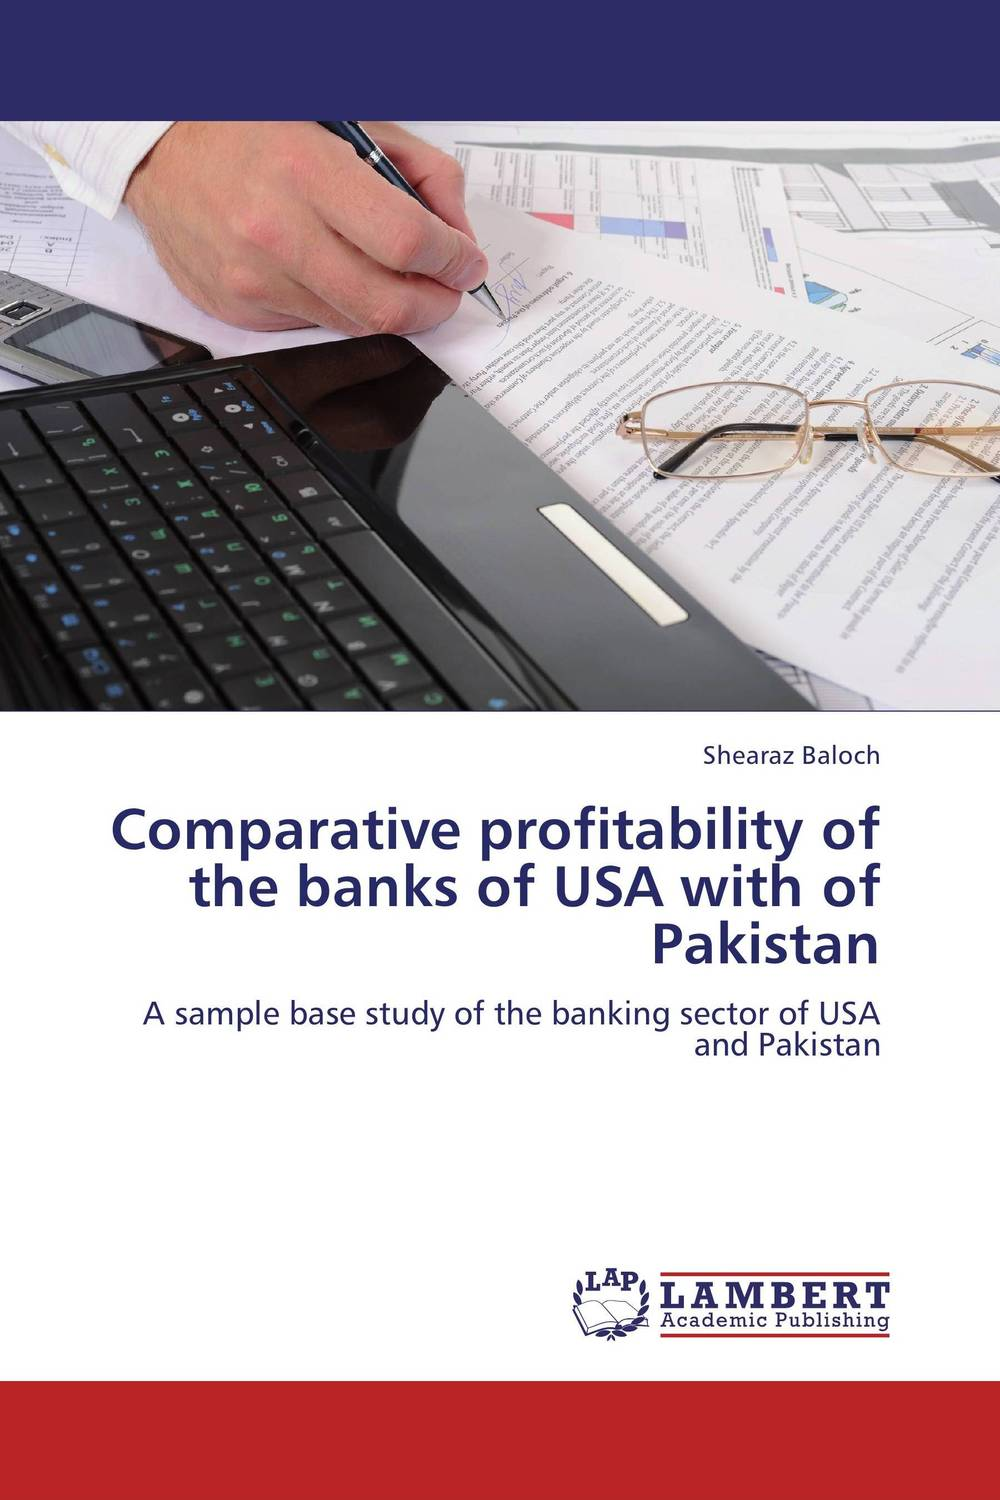 Comparative profitability of the banks of USA with of Pakistan